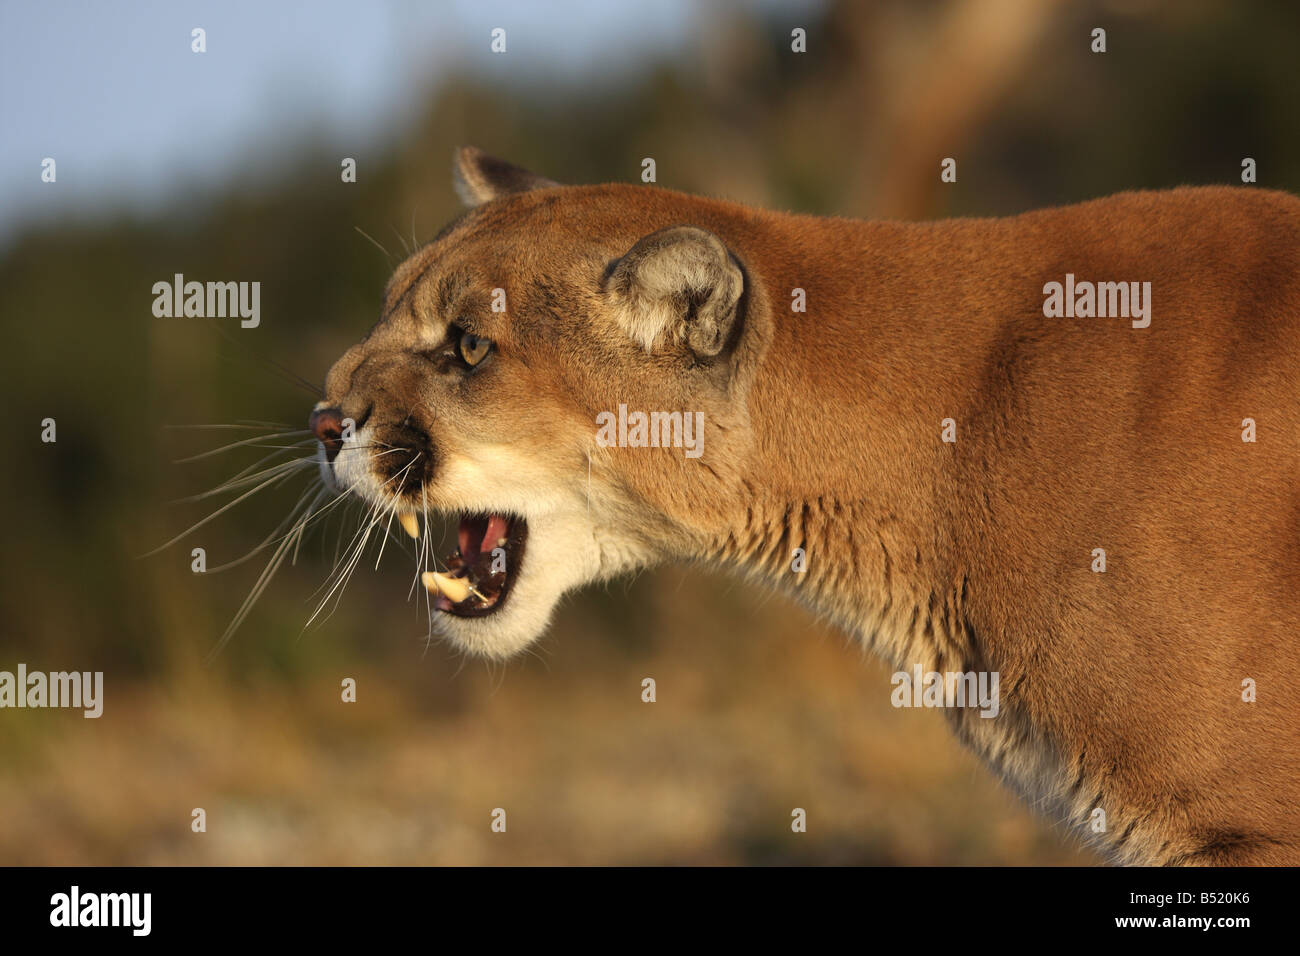 Mountain lion, cougar, puma, snarling - Stock Image